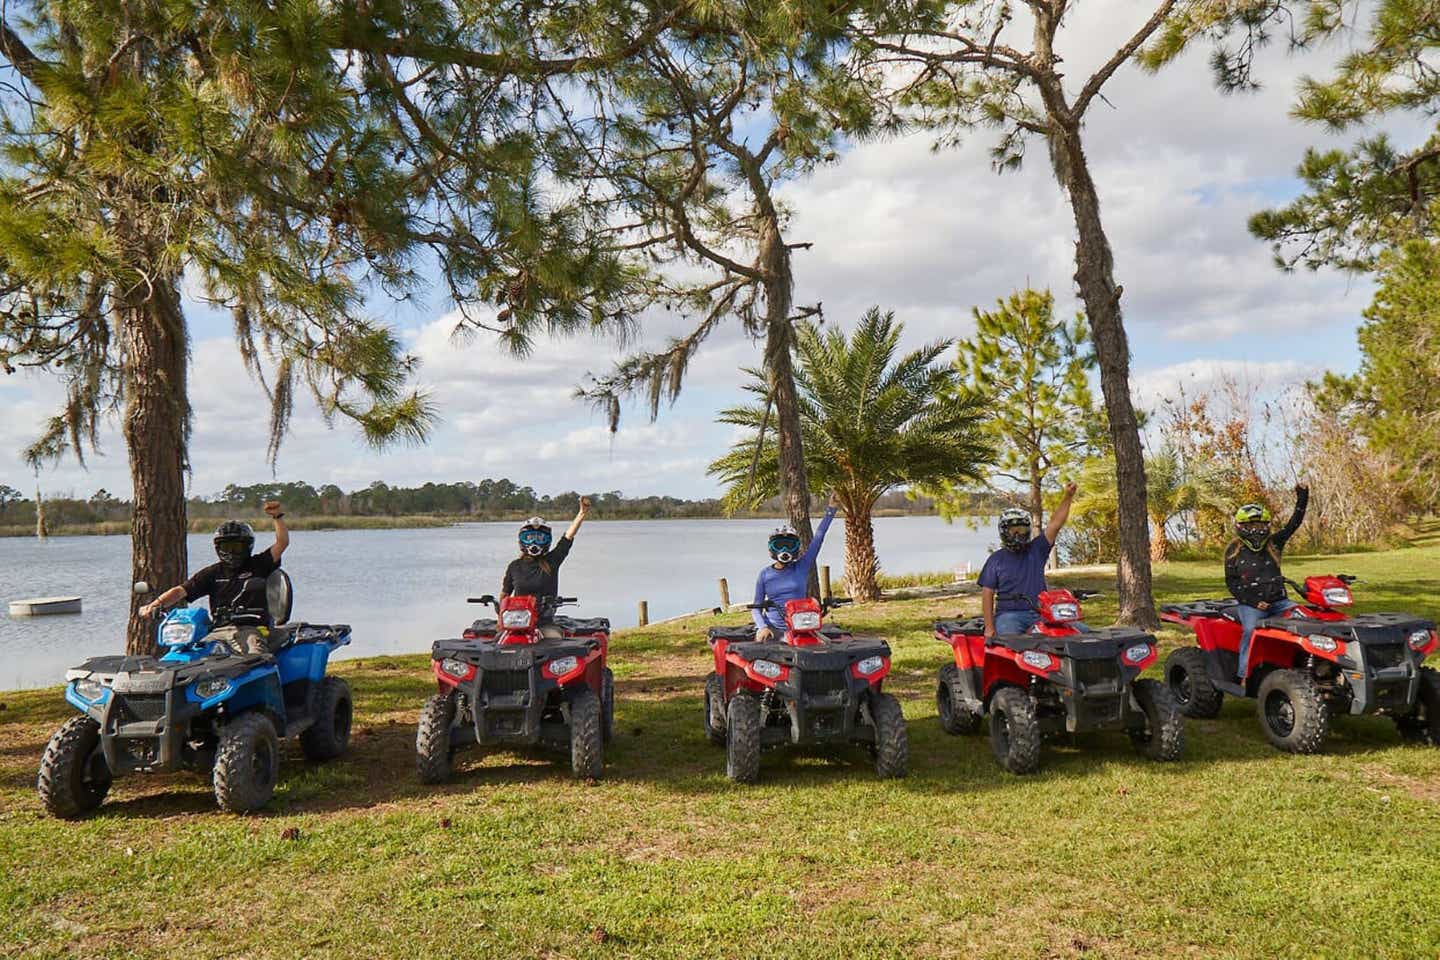 Five people sitting on ATVs